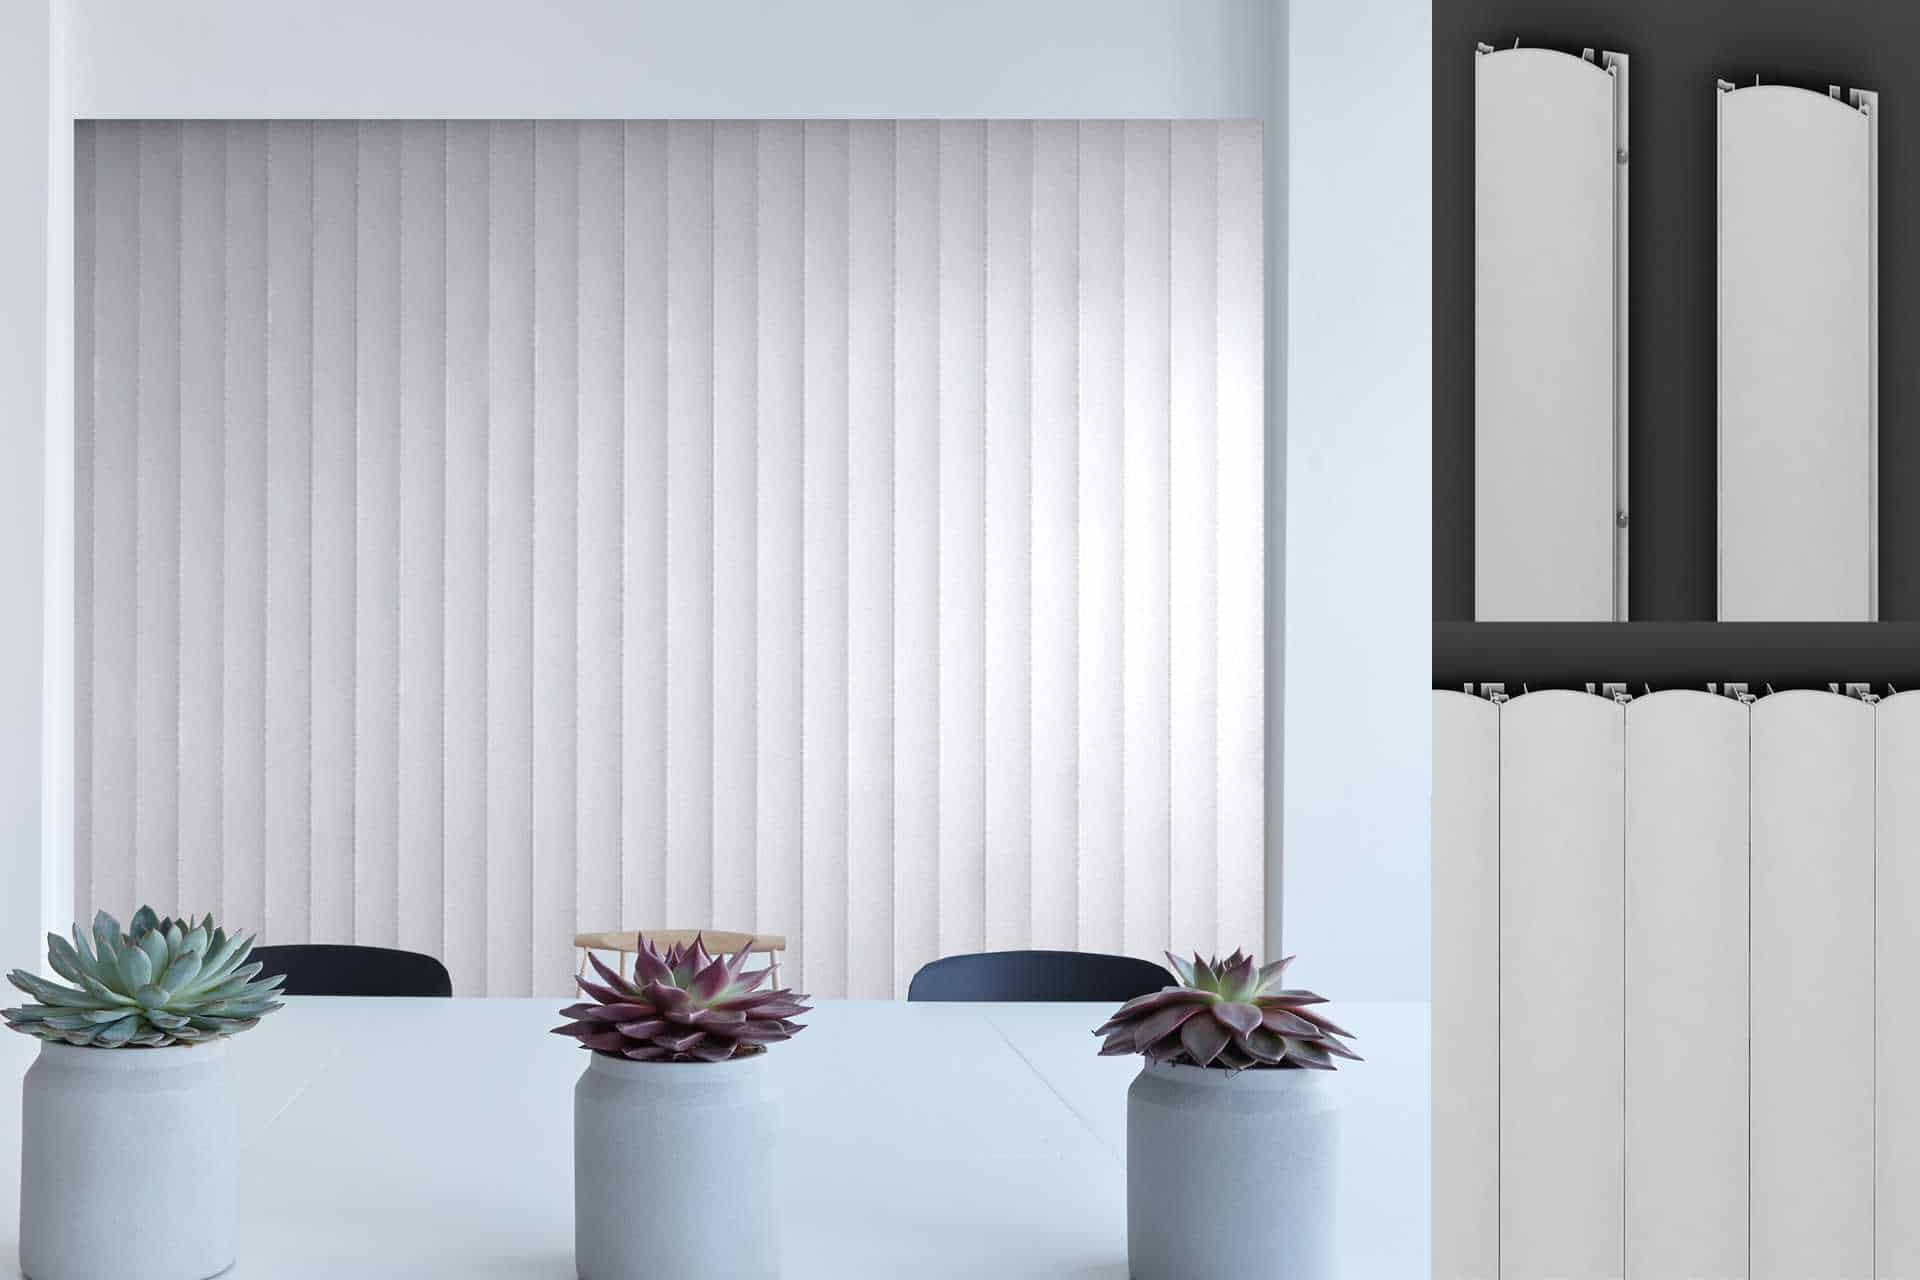 aluminum curved panels used on walls of a living room or office wall add to the aesthetics